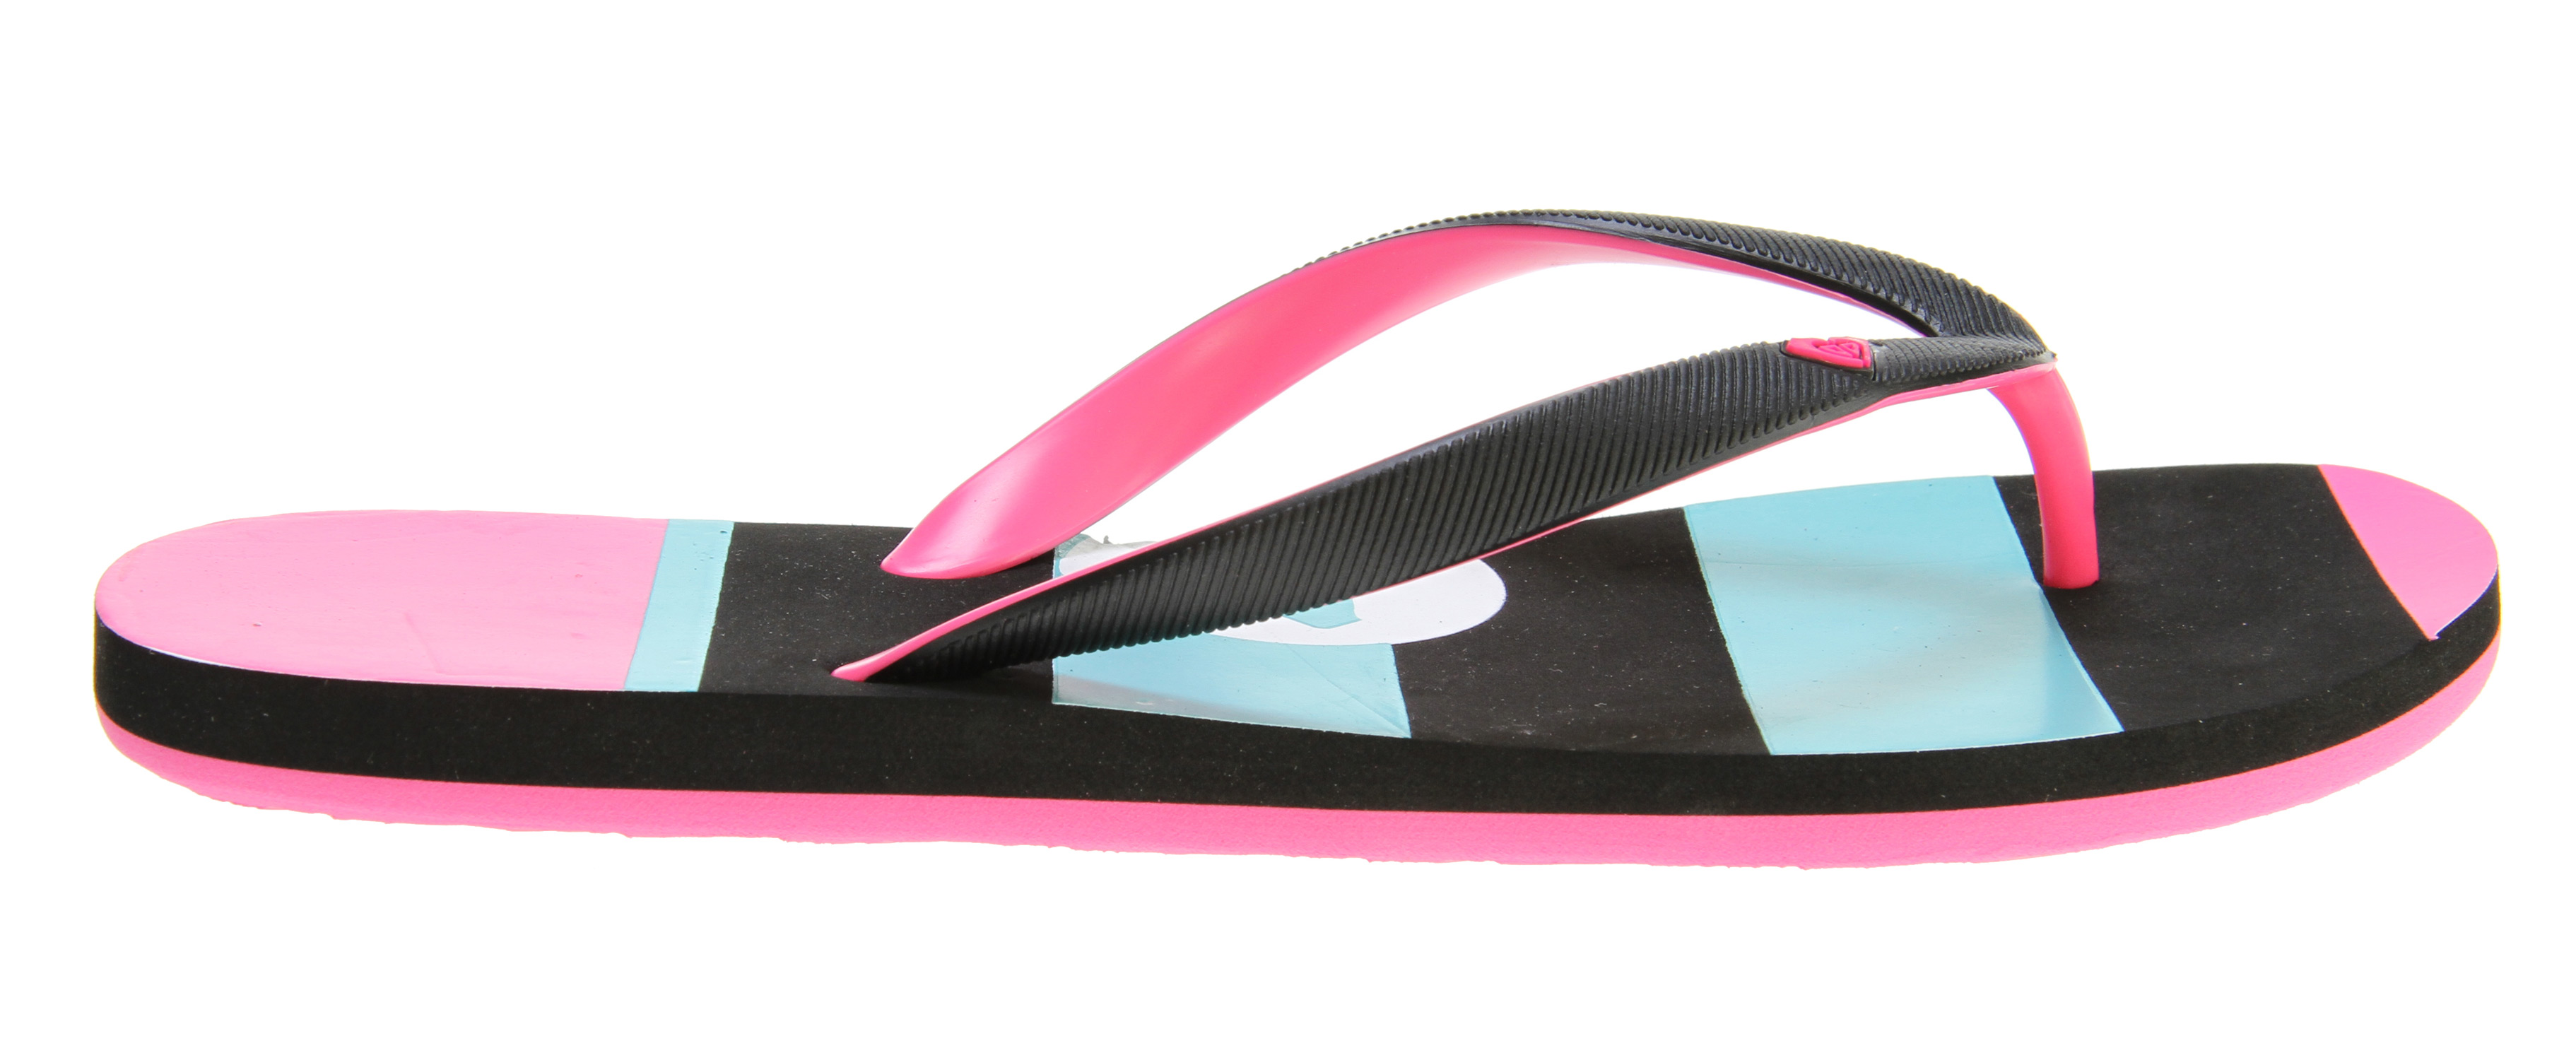 Surf Key Features of the Roxy Tahiti III Sandals: Soft EVA and two tone upper with molded heart logo Dual density EVA insole with graphic EVA outsole - $10.95